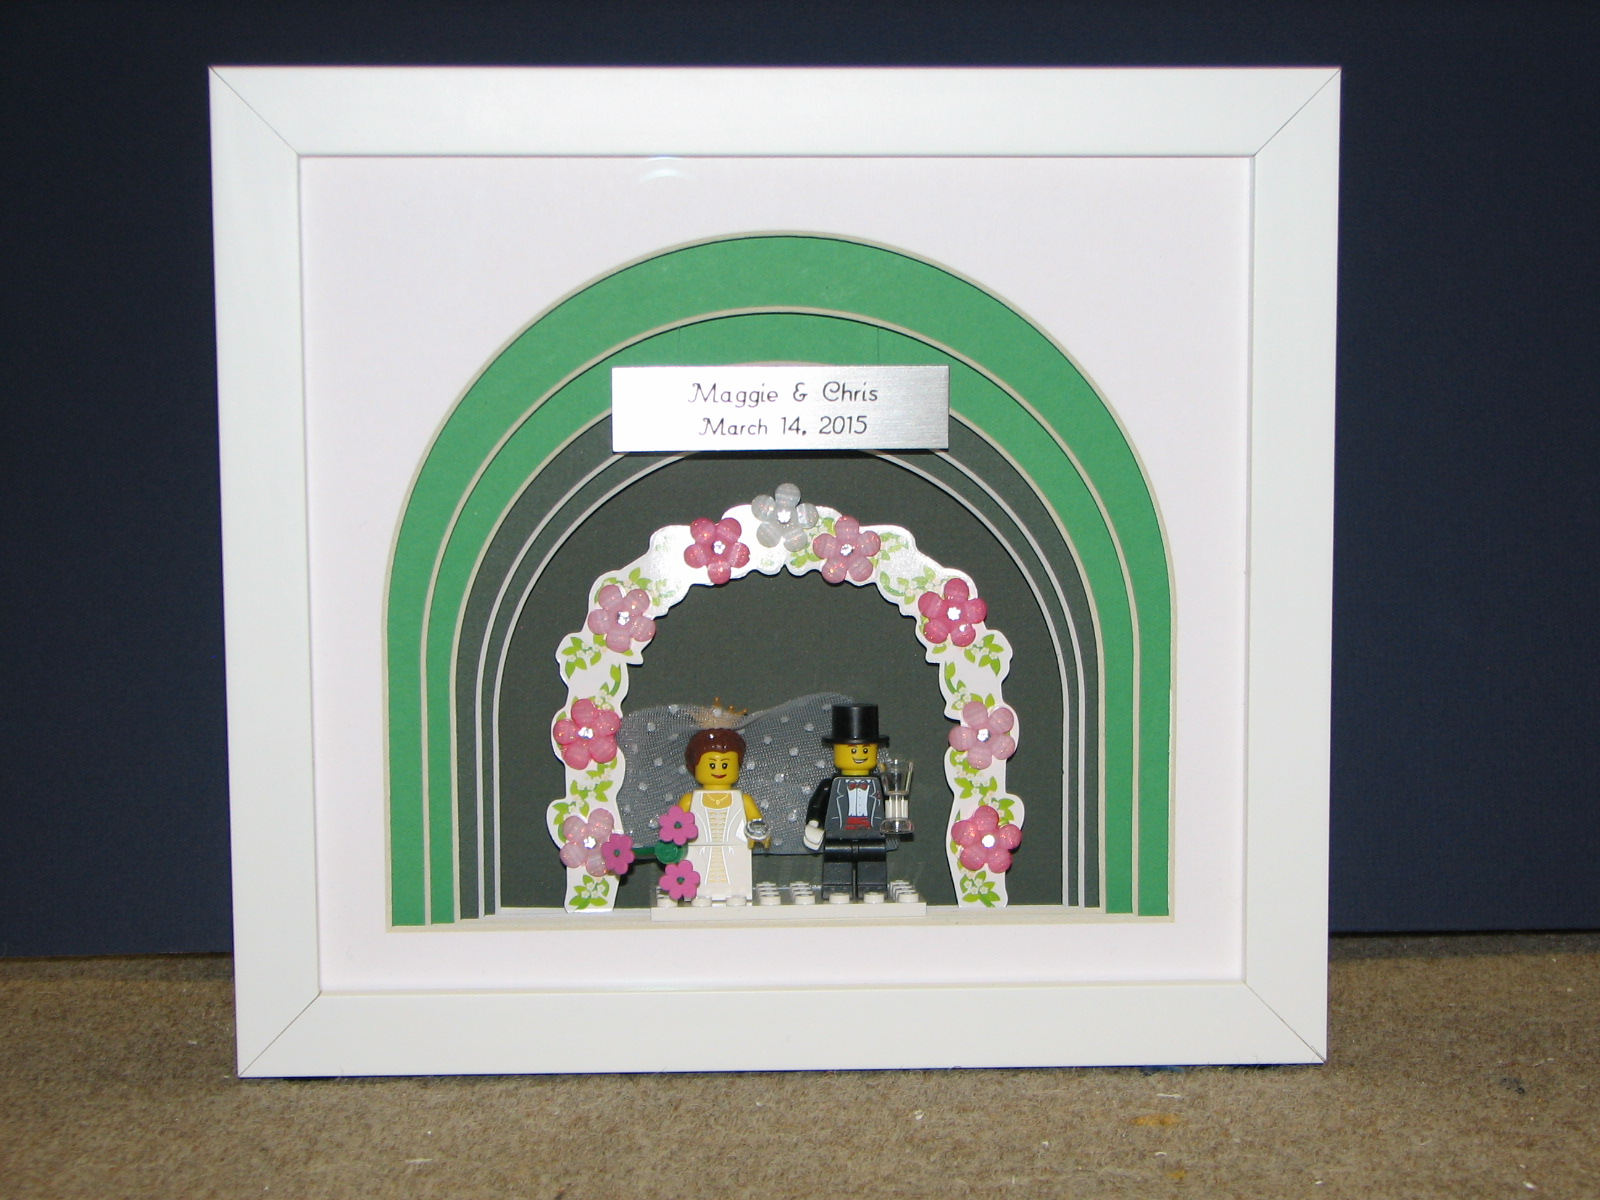 Lego wedding gift for Bride and Groom